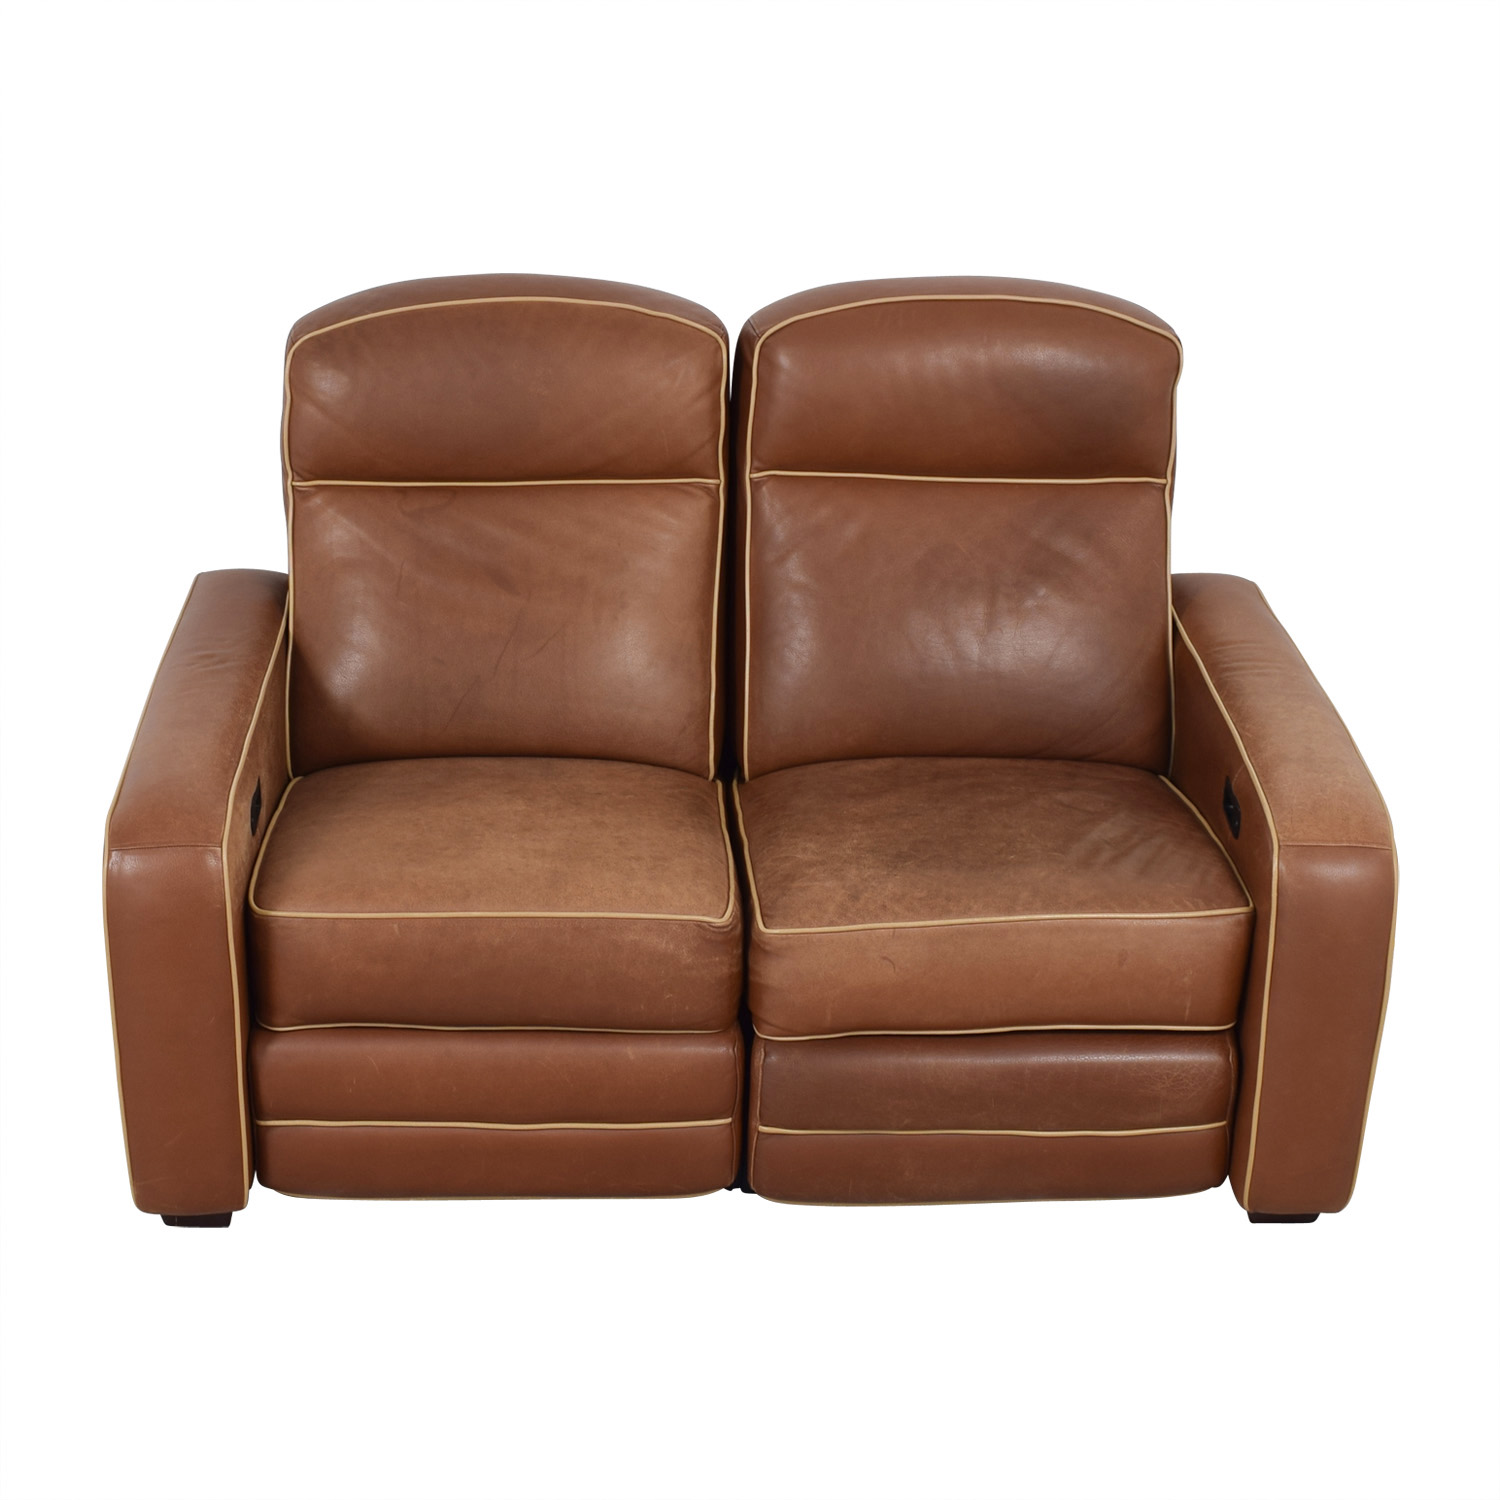 Leggett & Platt Leggett & Platt Custom Brown Loveseat Recliner discount